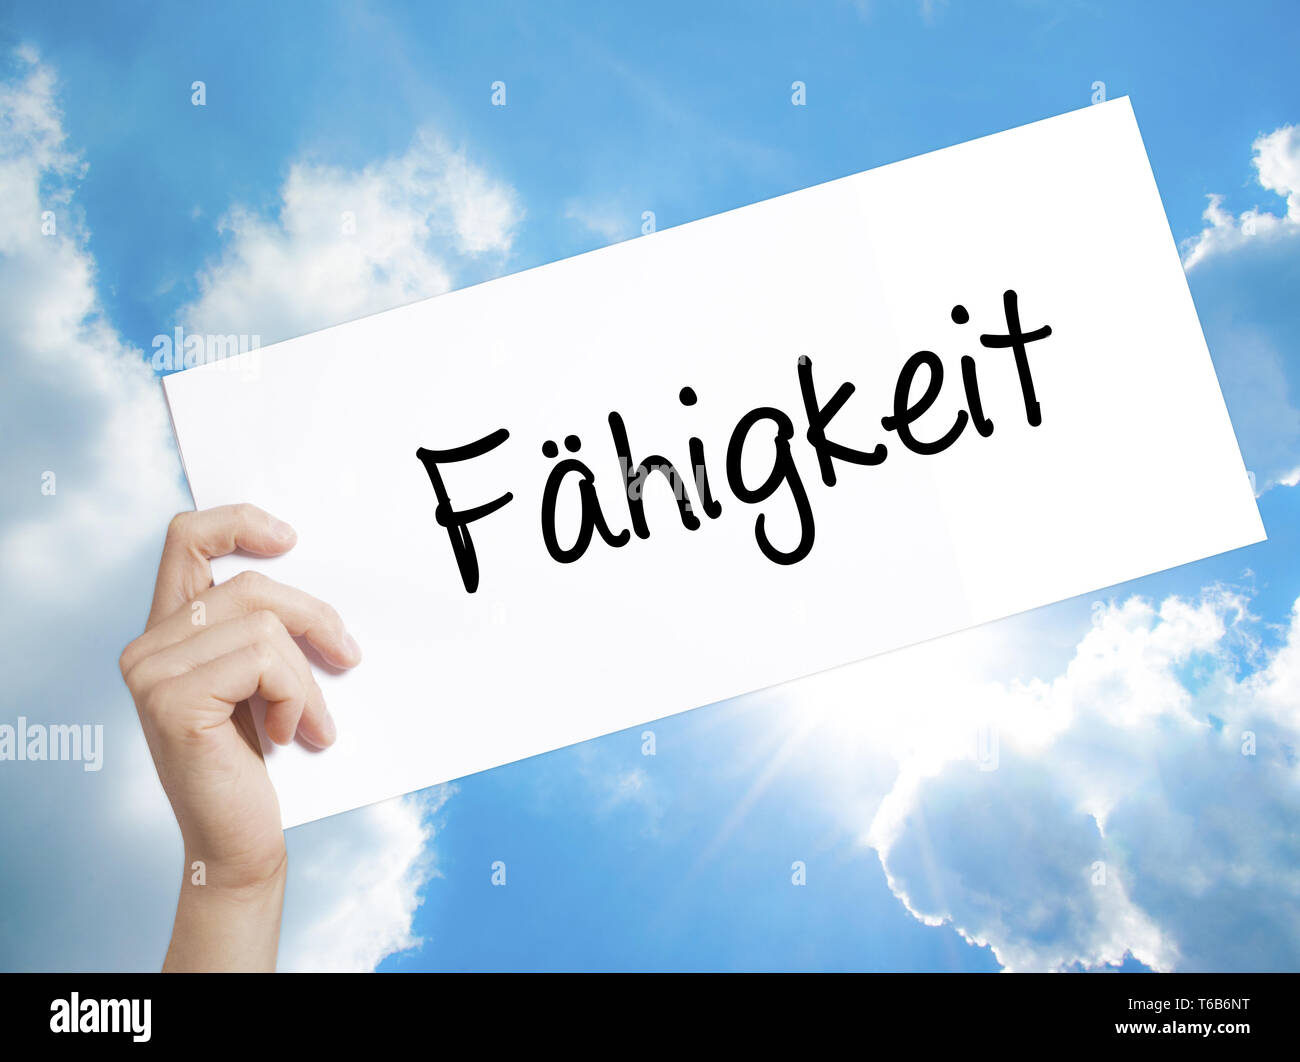 Fahigkeit (Ability in German) Sign on white paper. Man Hand Holding Paper with text. Isolated on sky background Stock Photo